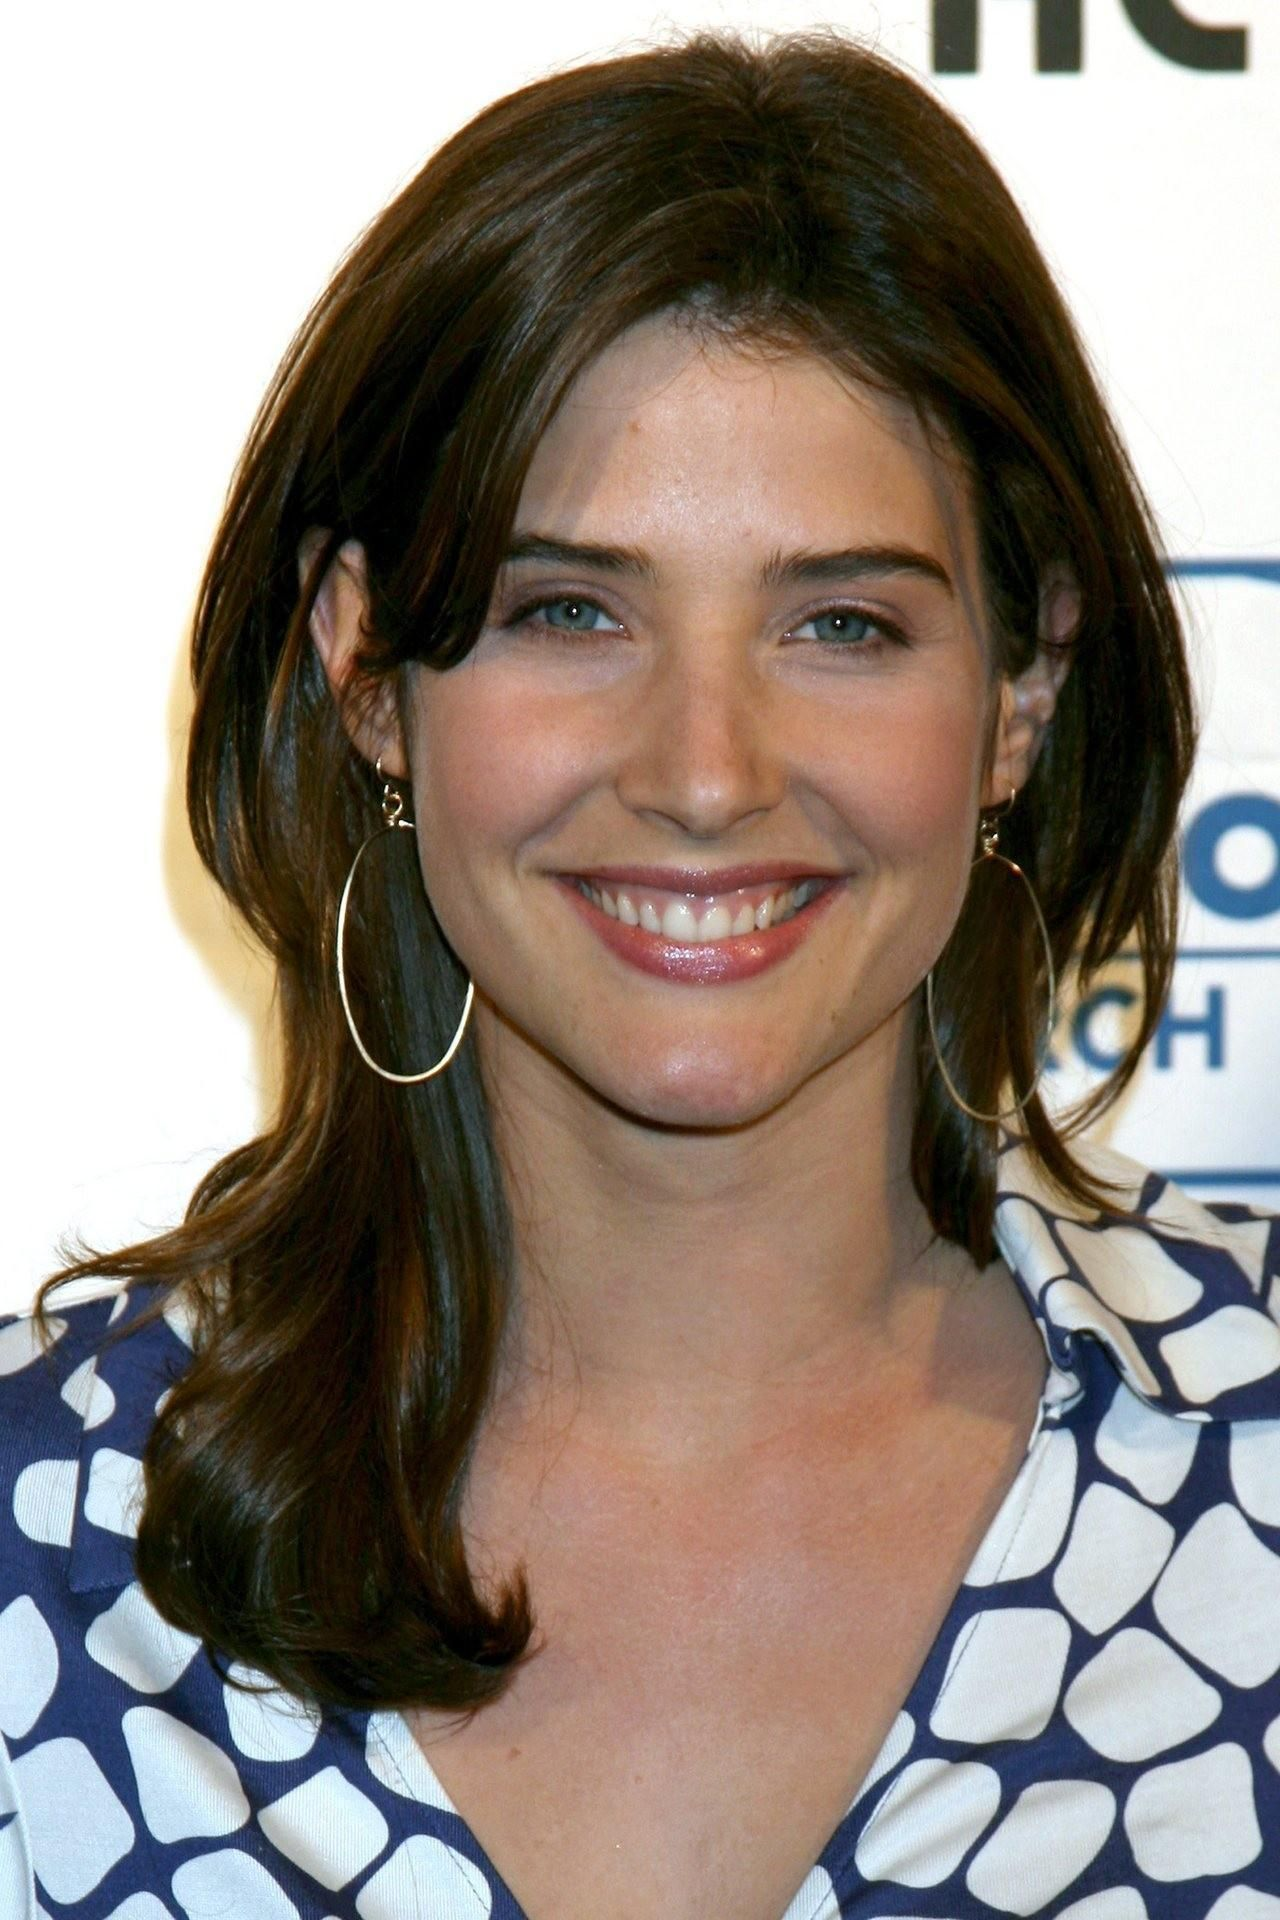 Snapchat Cobie Smulders naked (96 photos), Tits, Fappening, Selfie, cameltoe 2020